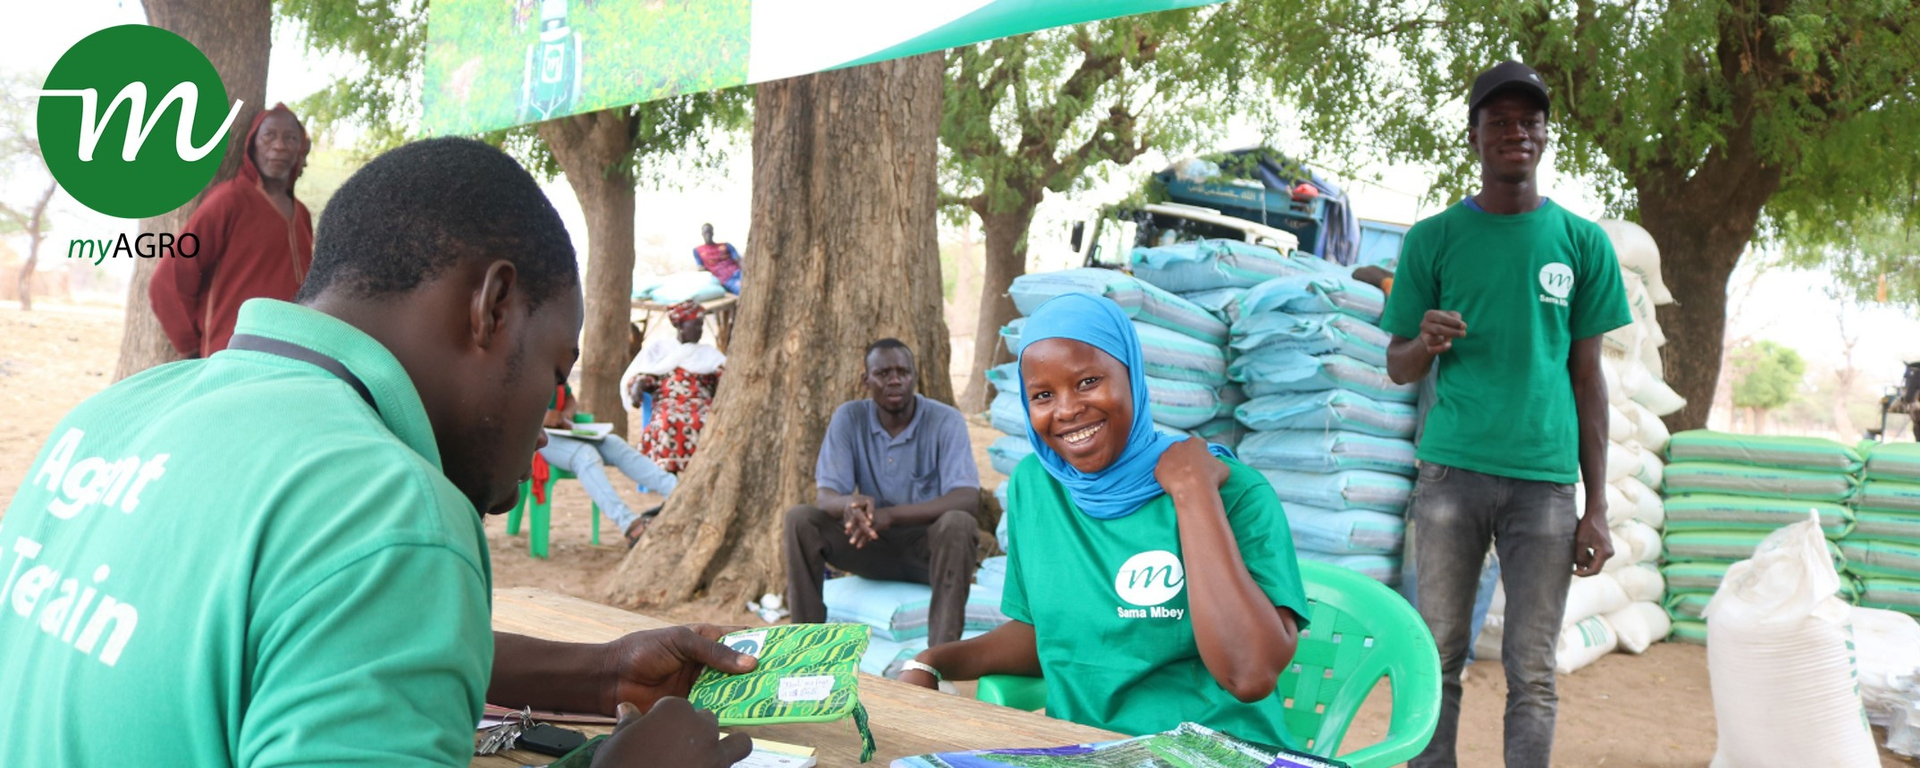 myAgro - Regional Director, Supply Chain Movemeback African opportunity cover image